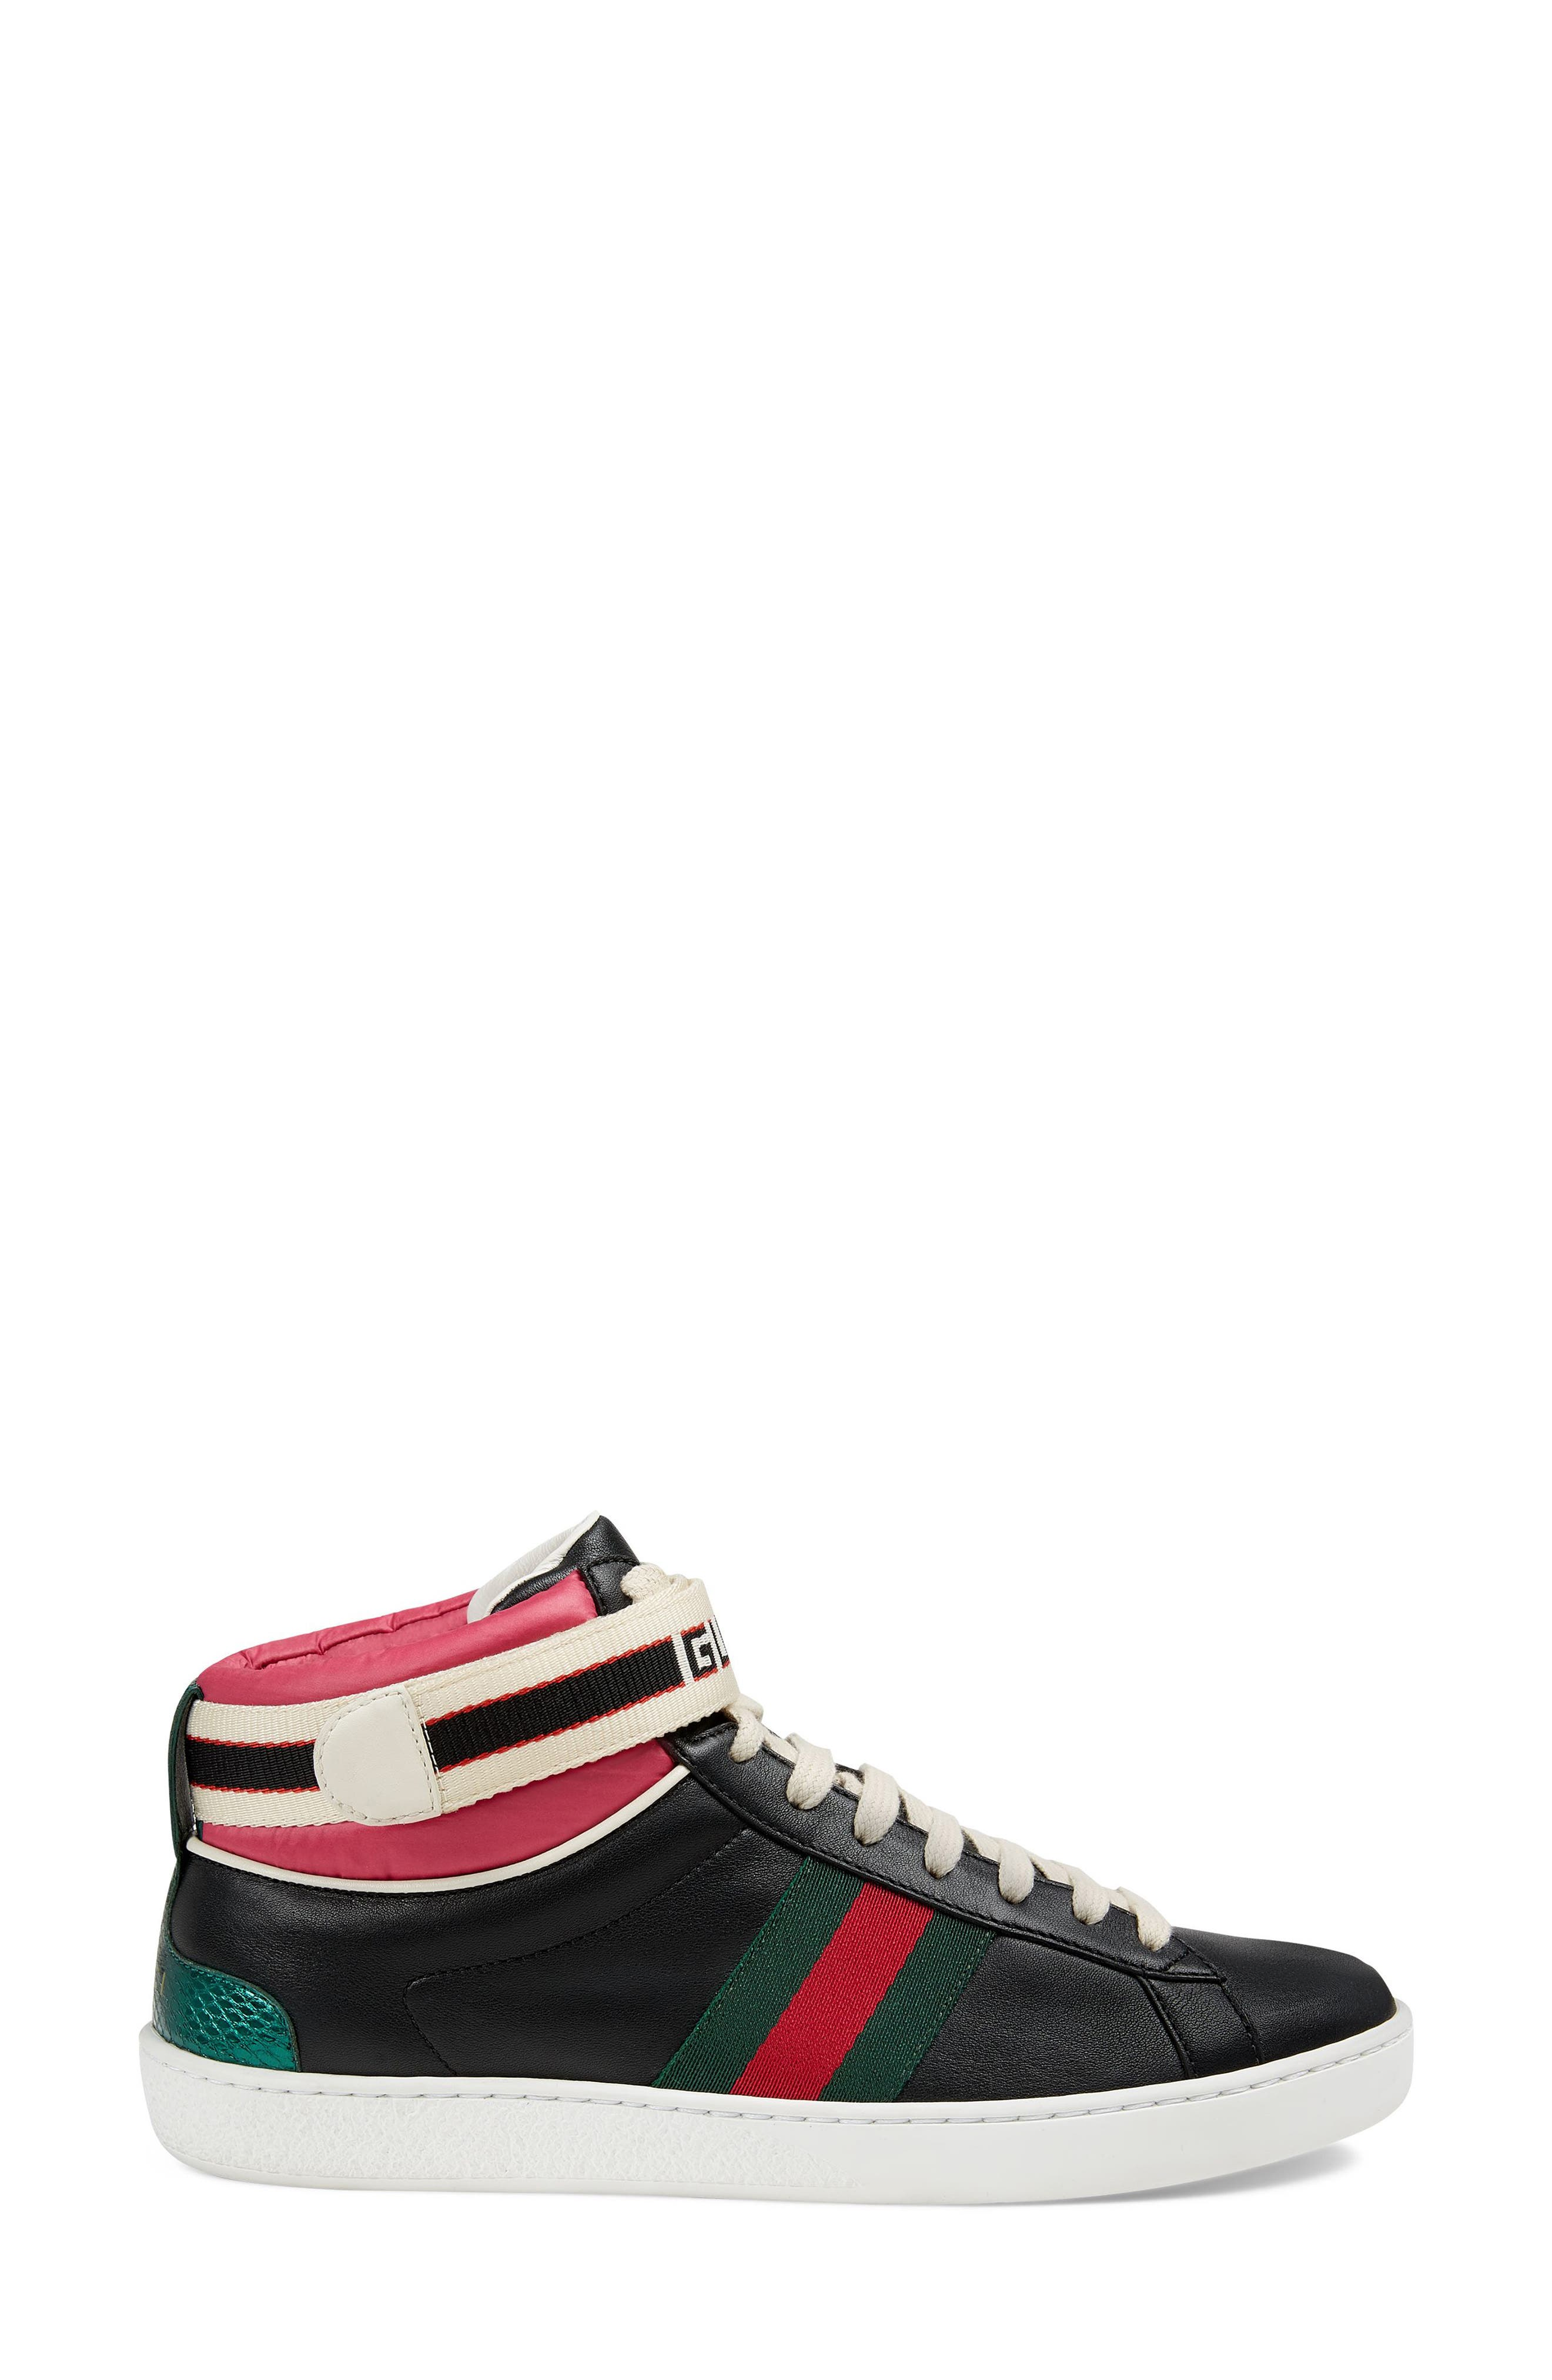 New Ace High Top Sneaker with Genuine Snakeskin Trim,                             Alternate thumbnail 2, color,                             Black